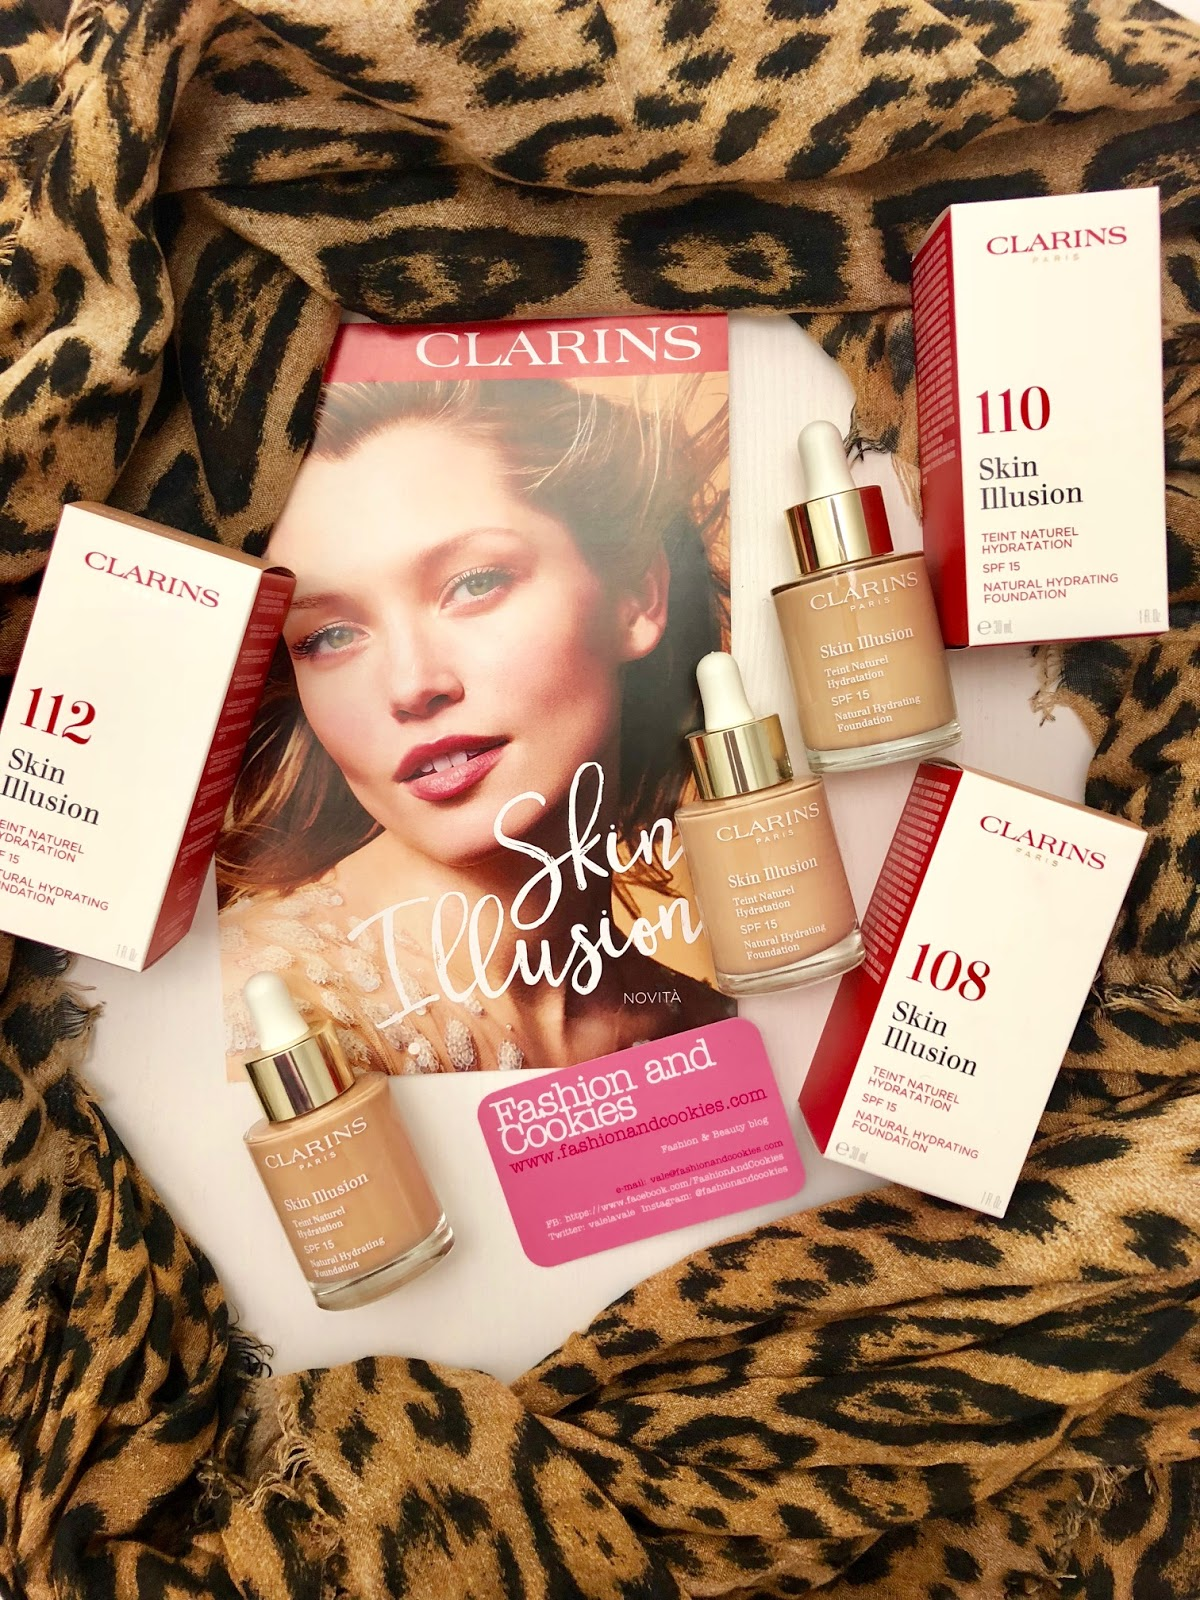 Skin Illusion di Clarins: nuovo fondotinta idratante effetto nudo su Fashion and Cookies beauty blog, beauty blogger